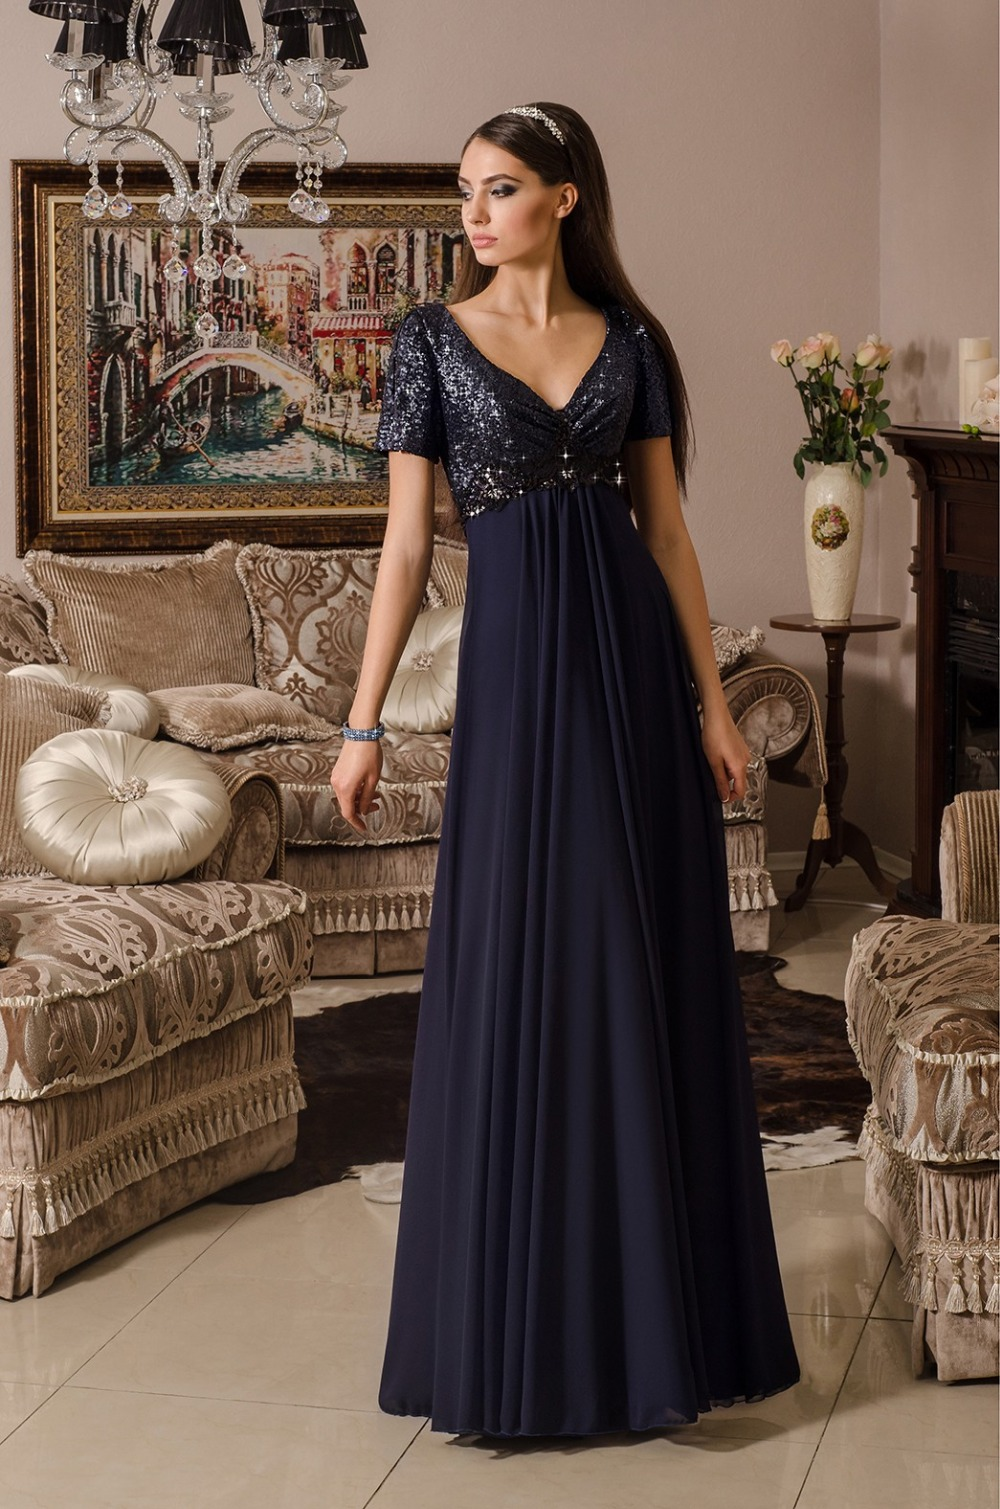 Akd-05 Plus Size Formal Party Evening Gown 2015 Navy Blue Sequins ...